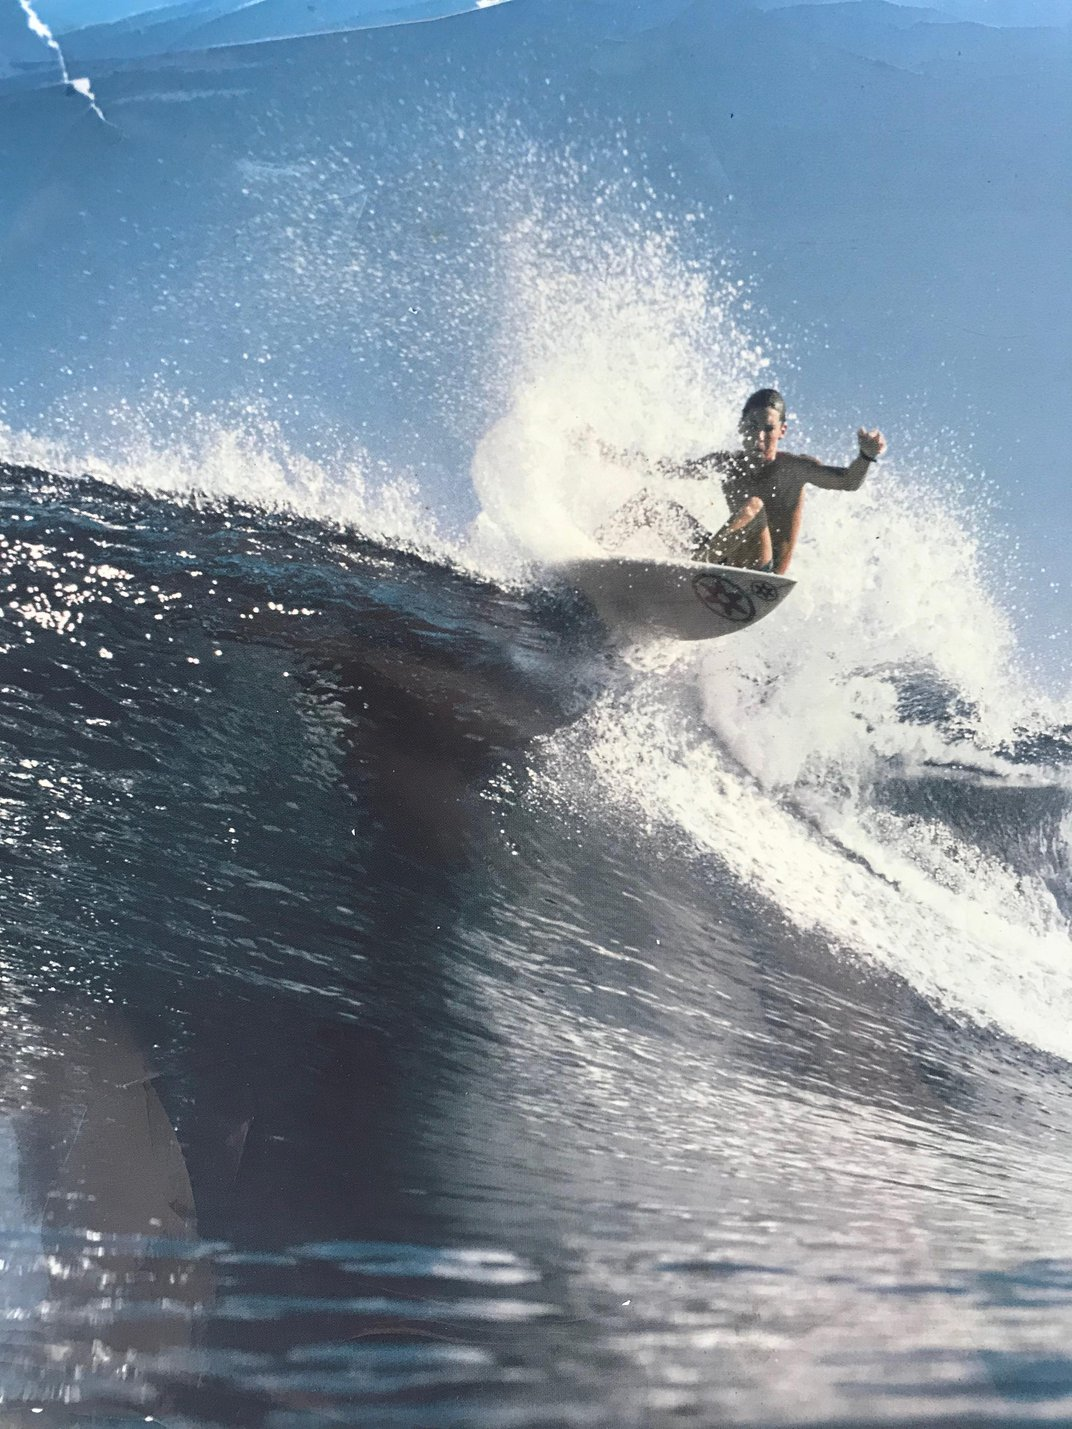 The Epic Quest to Ride the World's Biggest Wave